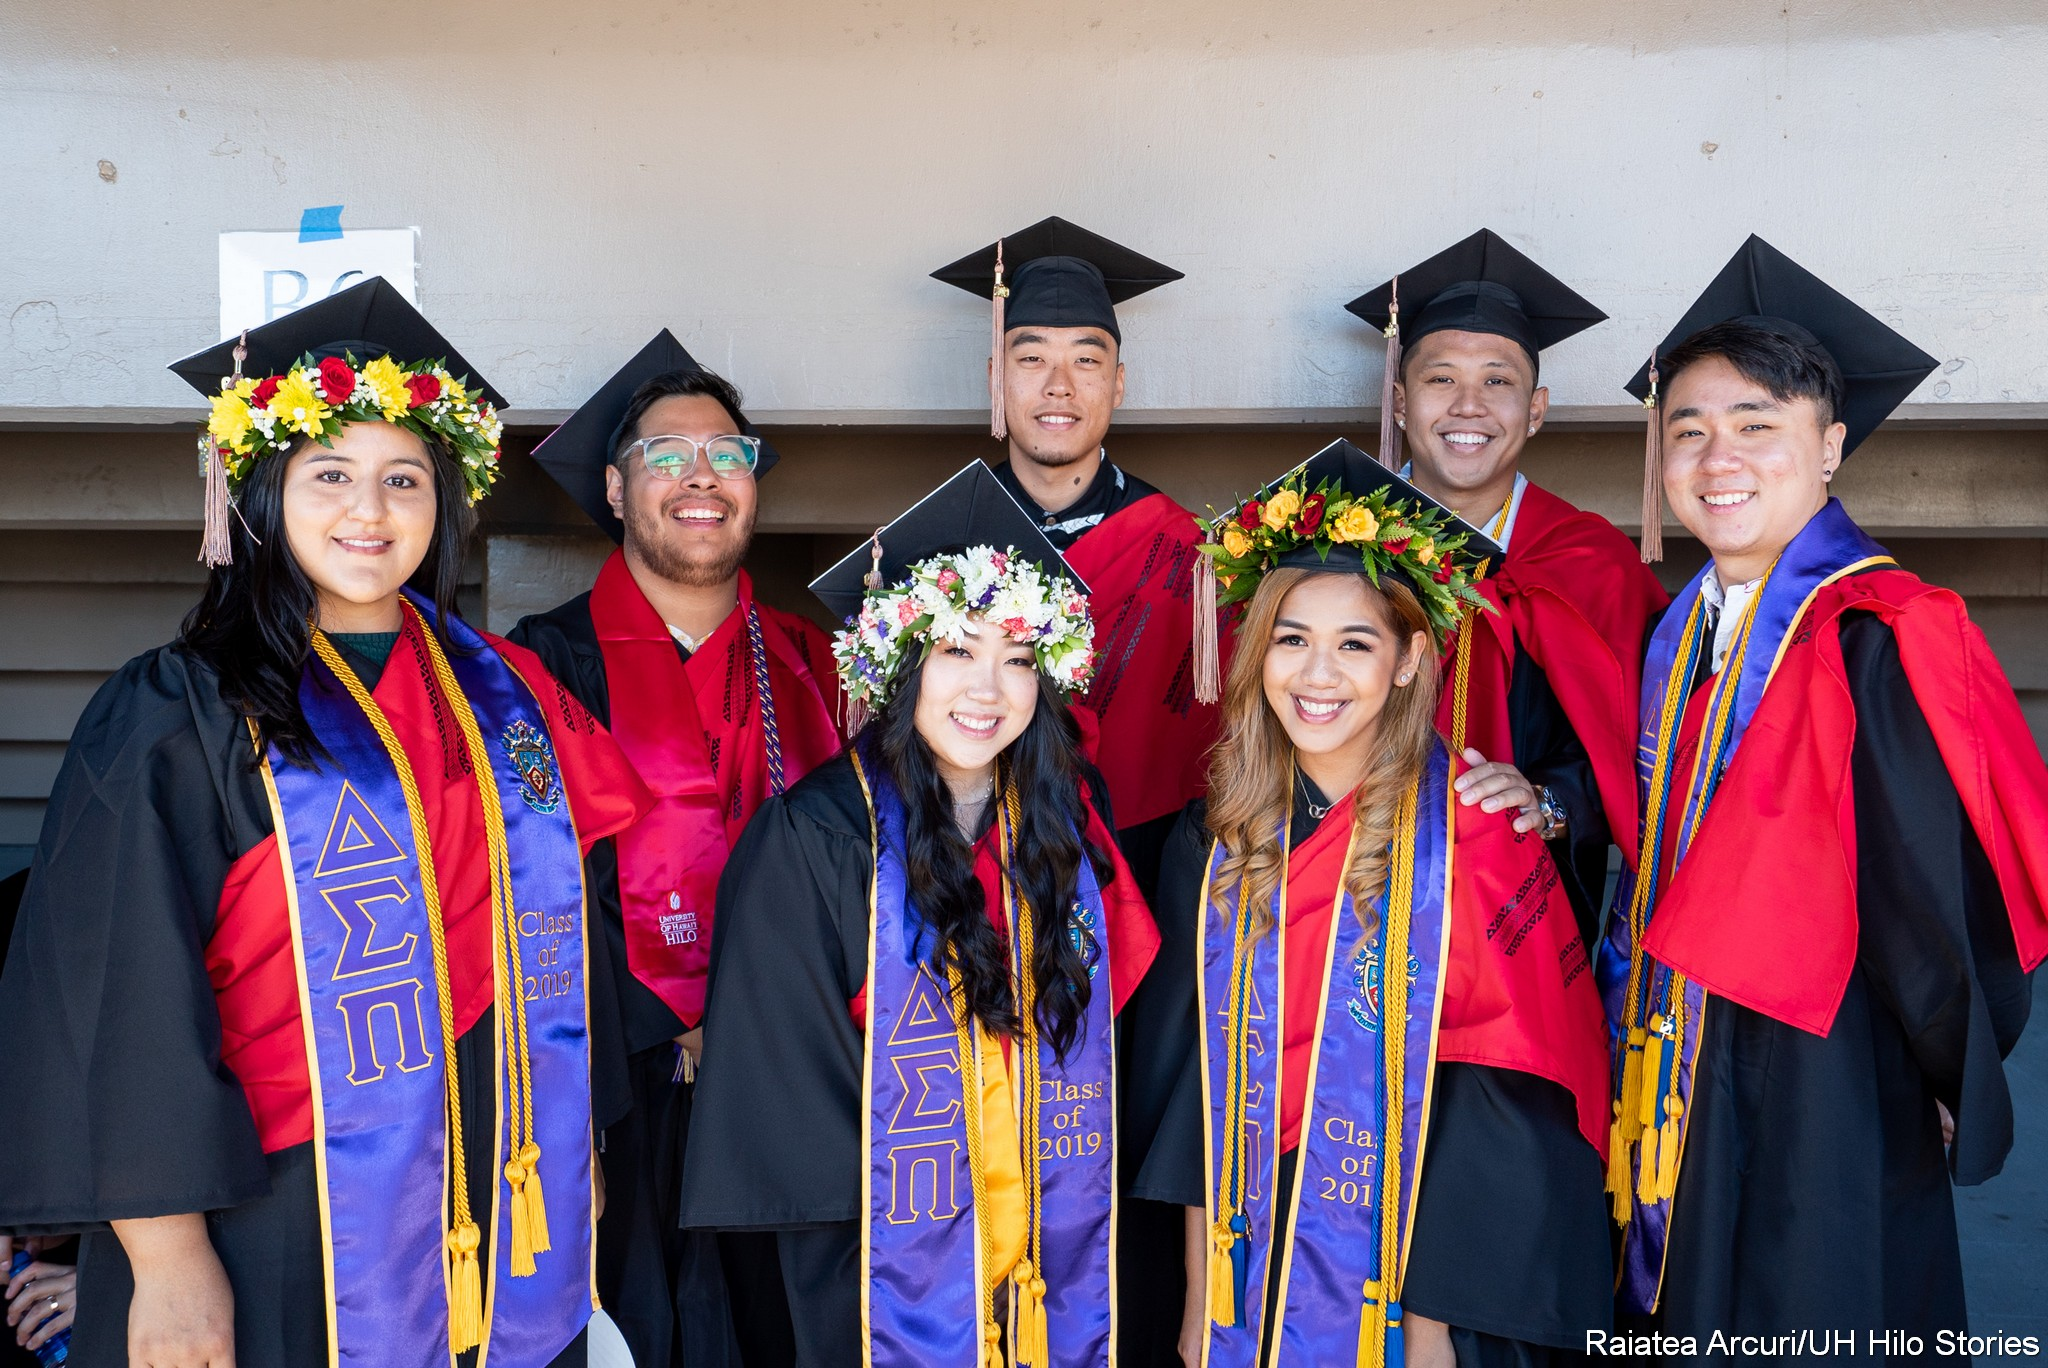 Group of graduates before ceremonies pose for group photo.